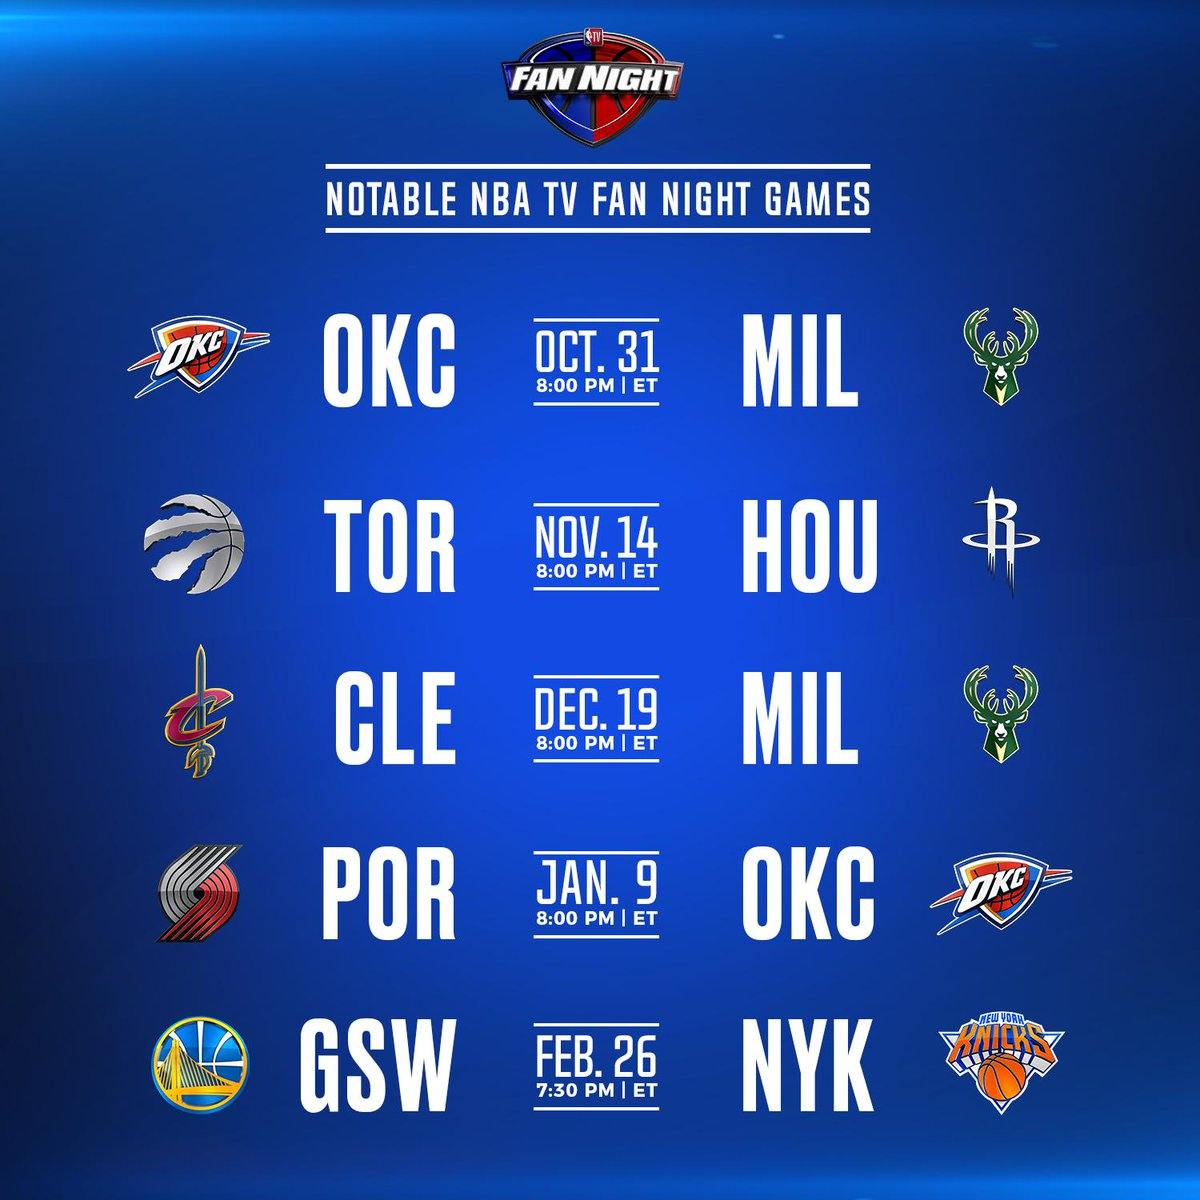 An official 👀 look at the notable #FanNight games coming your way next season on NBA TV 📺!